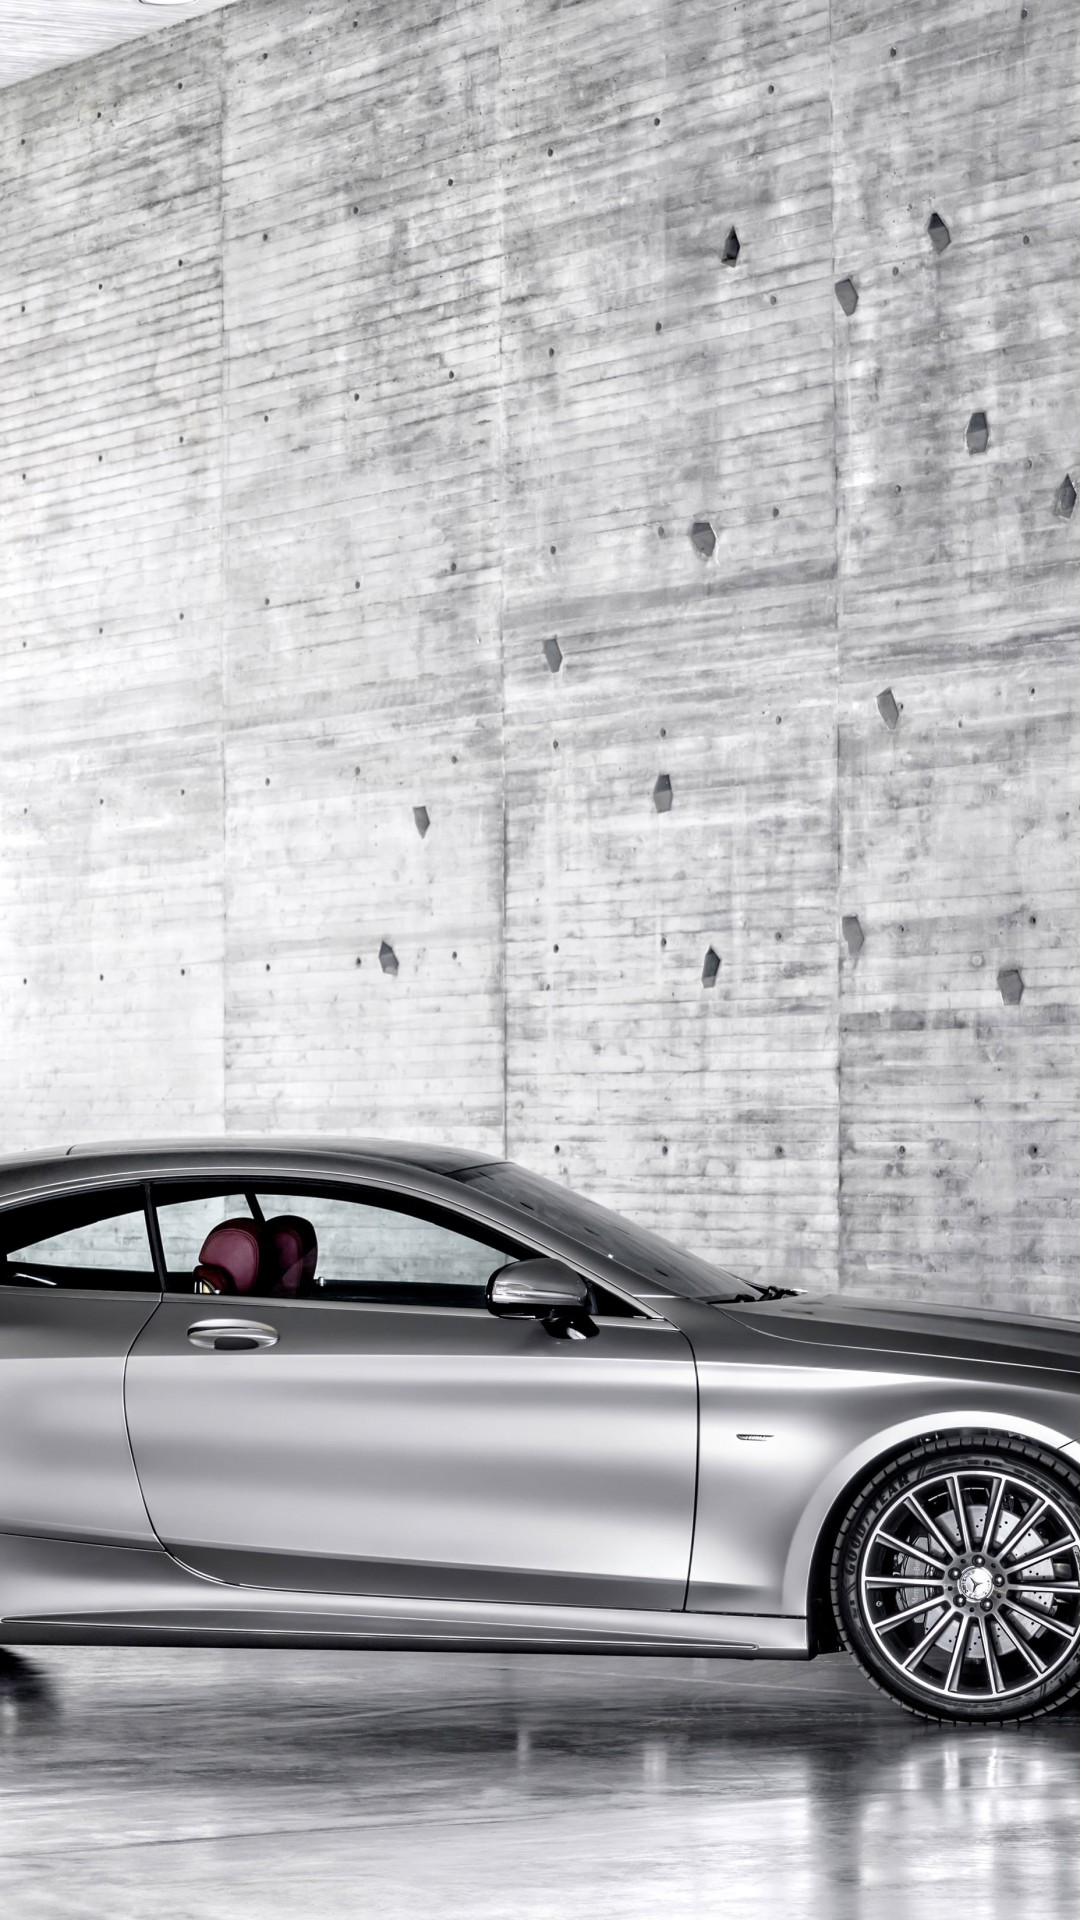 2015 Mercedes-Benz S-Class Coupe Wallpaper for SONY Xperia Z3